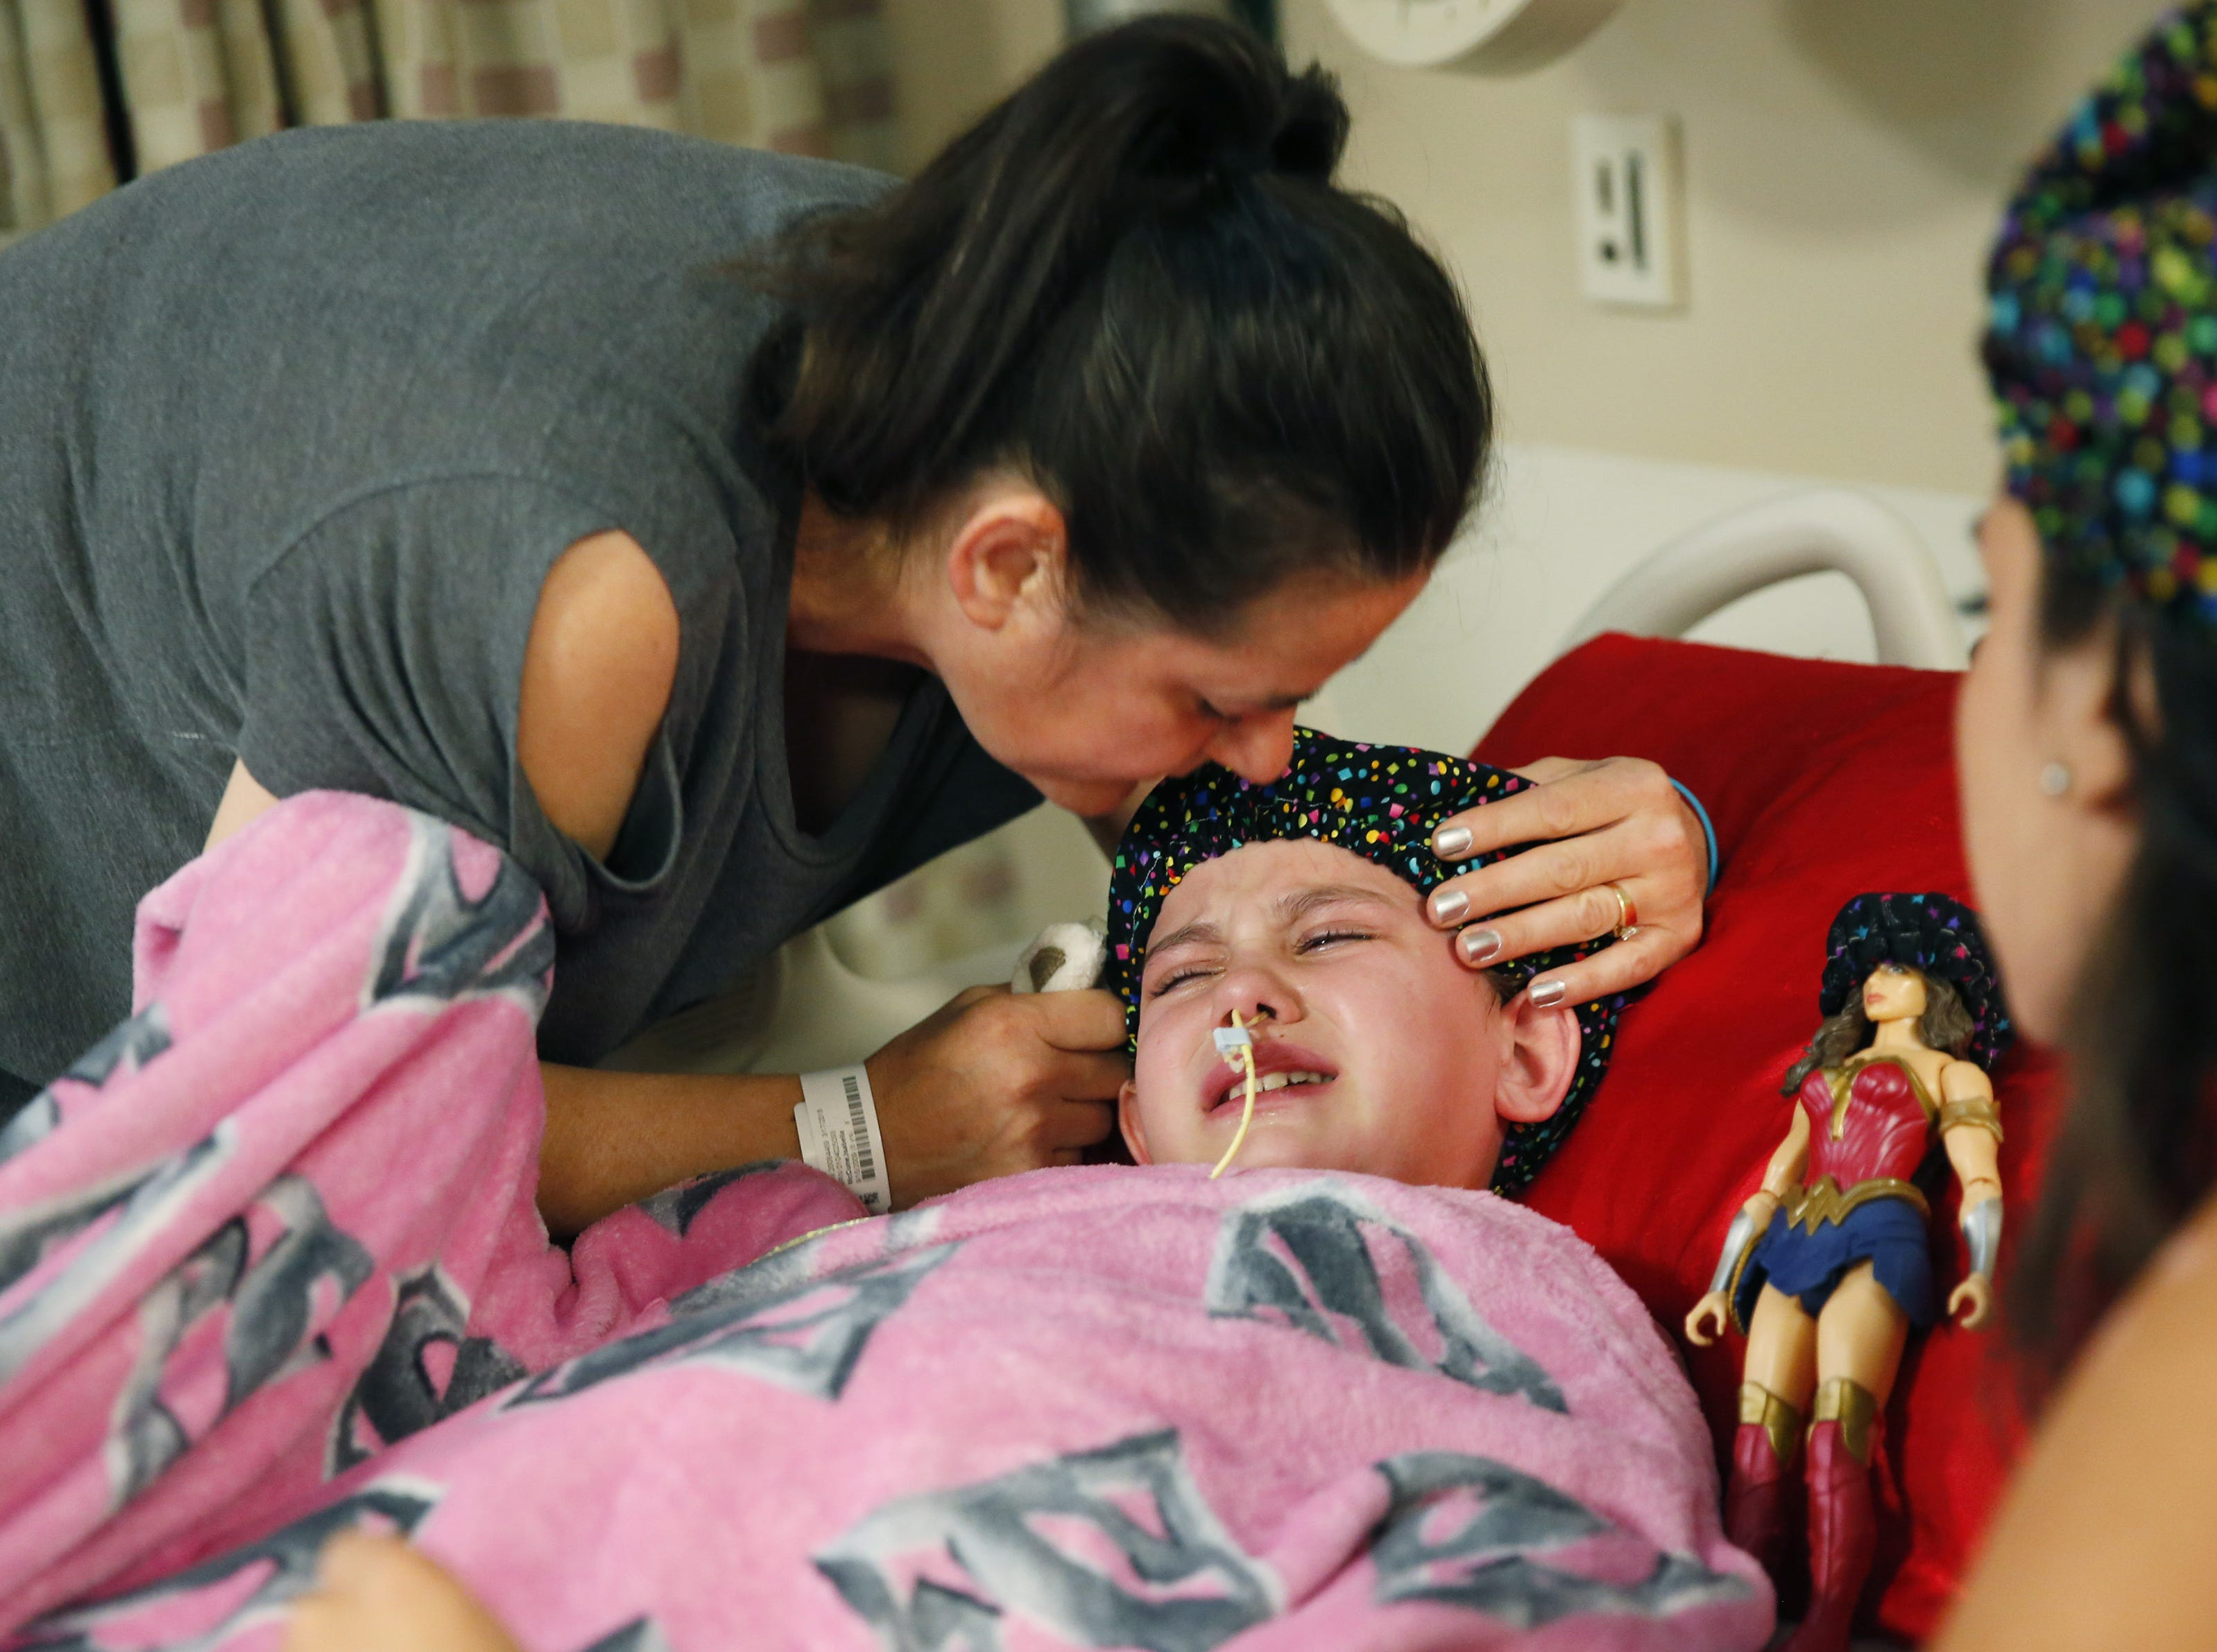 Isabella McCune gets a kiss from her mom, Lilly, before surgery at the Arizona Burn Center in Phoenix May 24, 2018. She was severely burned in a home accident in March.